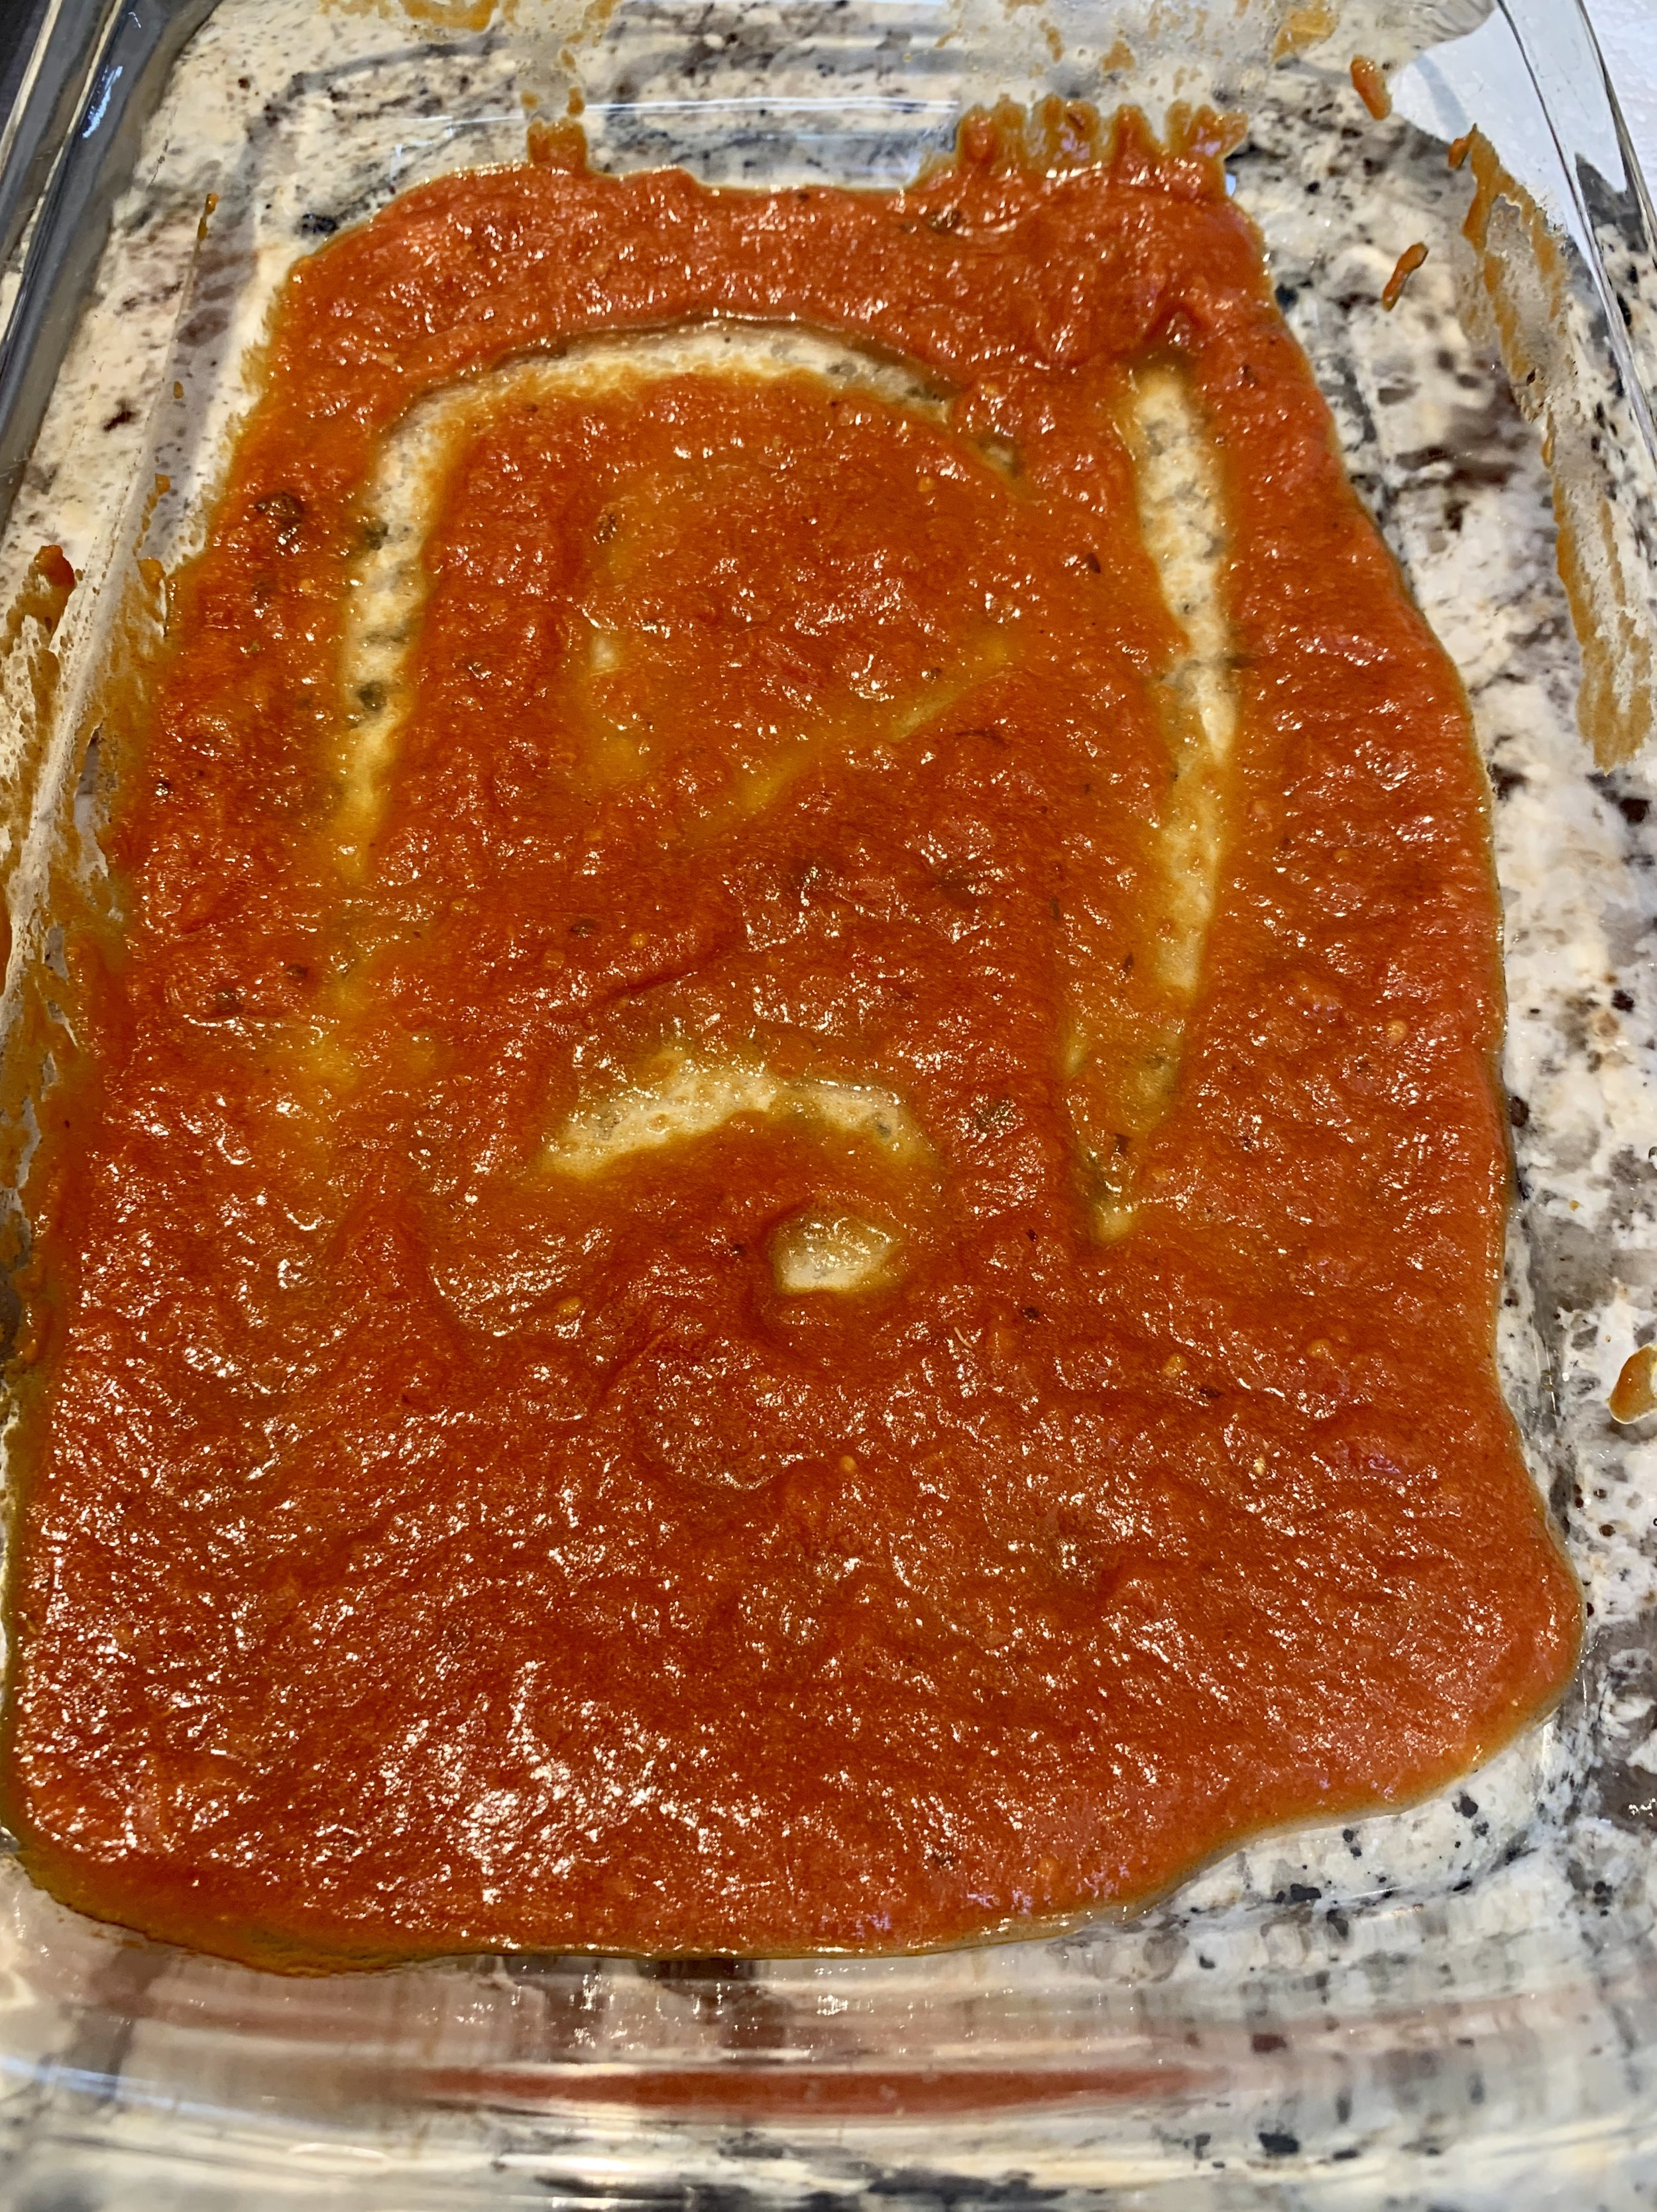 - Place a ladle of tomato sauce in bottom of 9 x 13 oven proof baking dish.